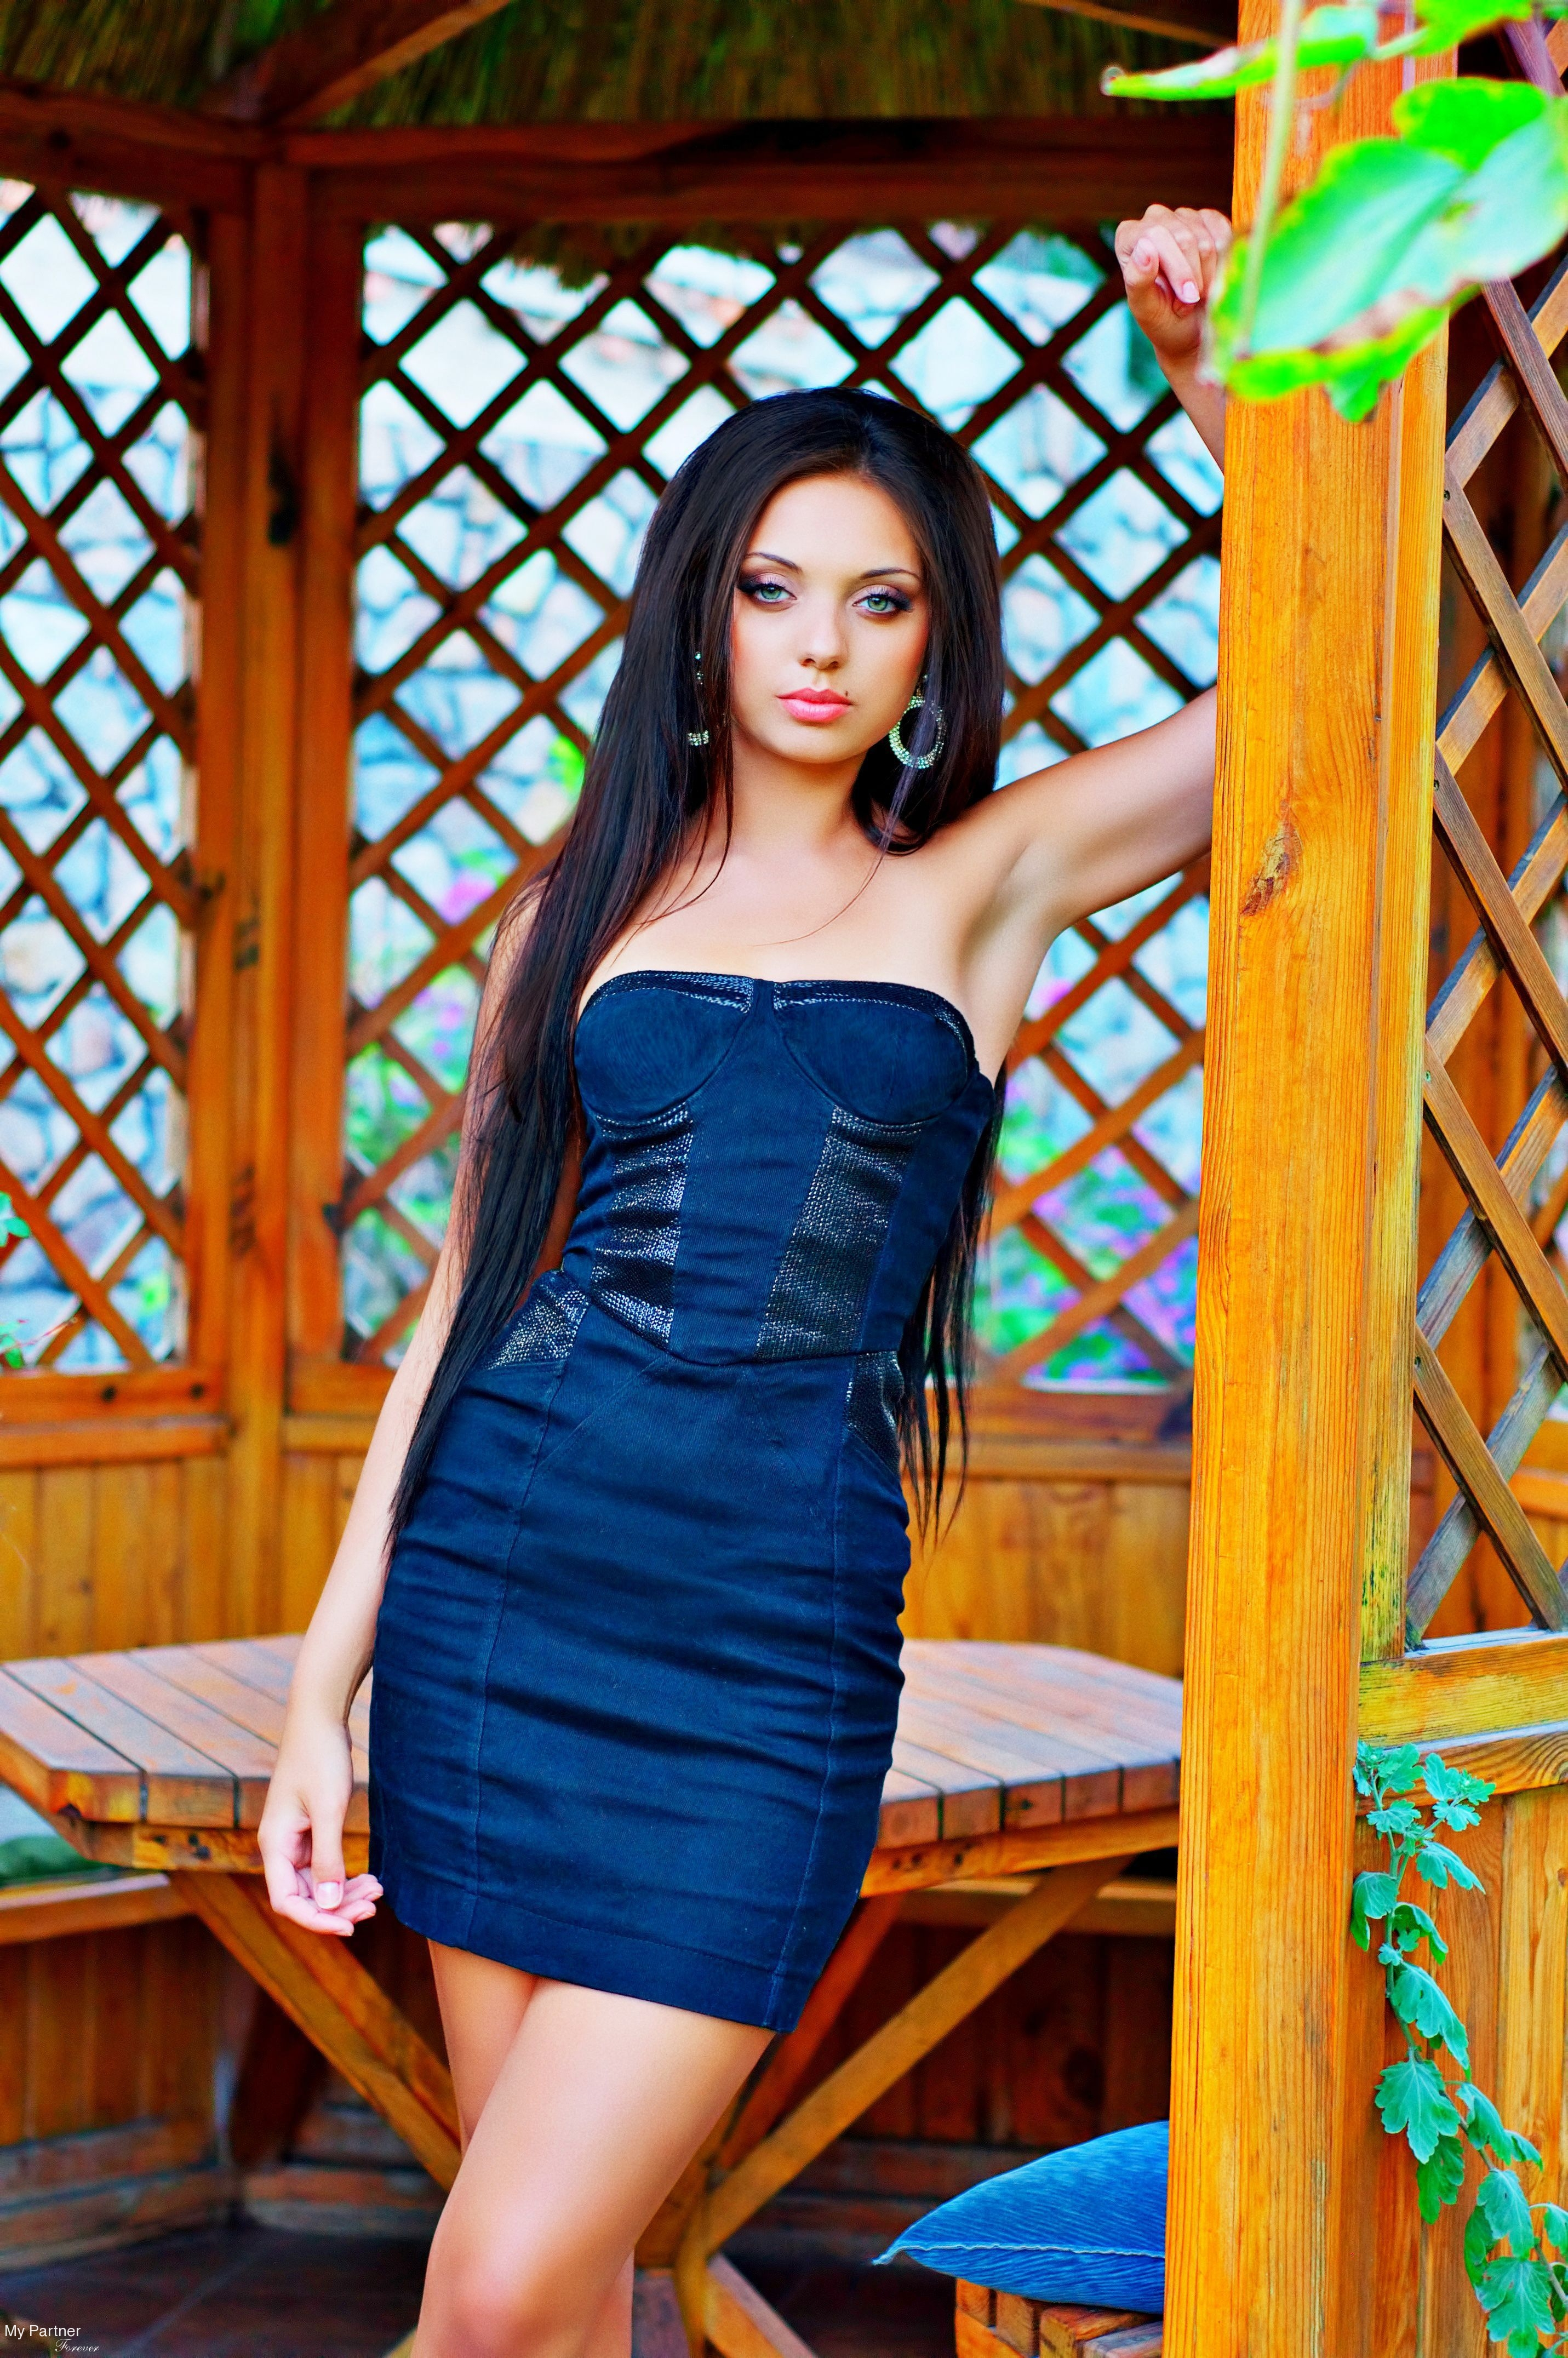 Dating Site to Meet Gorgeous Ukrainian Girl Yanina from Zaporozhye, Ukraine